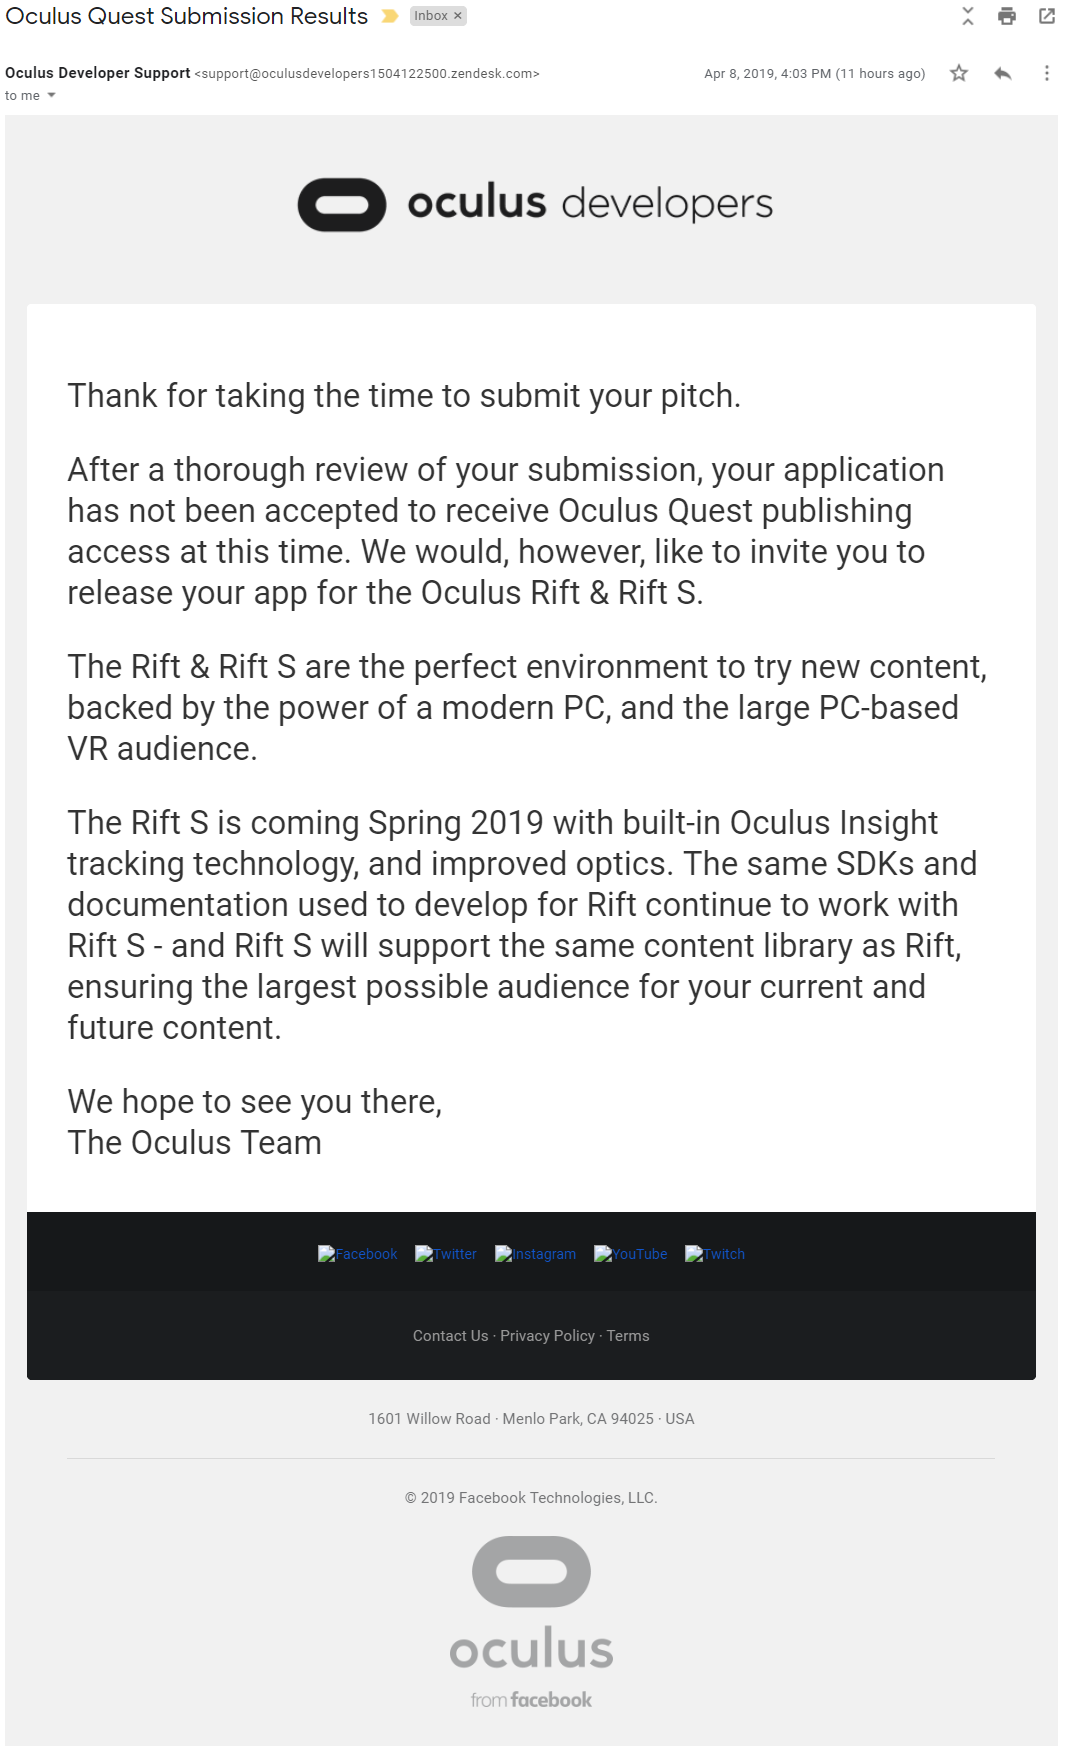 My application to become an Oculus Quest developer was denied by Oculus